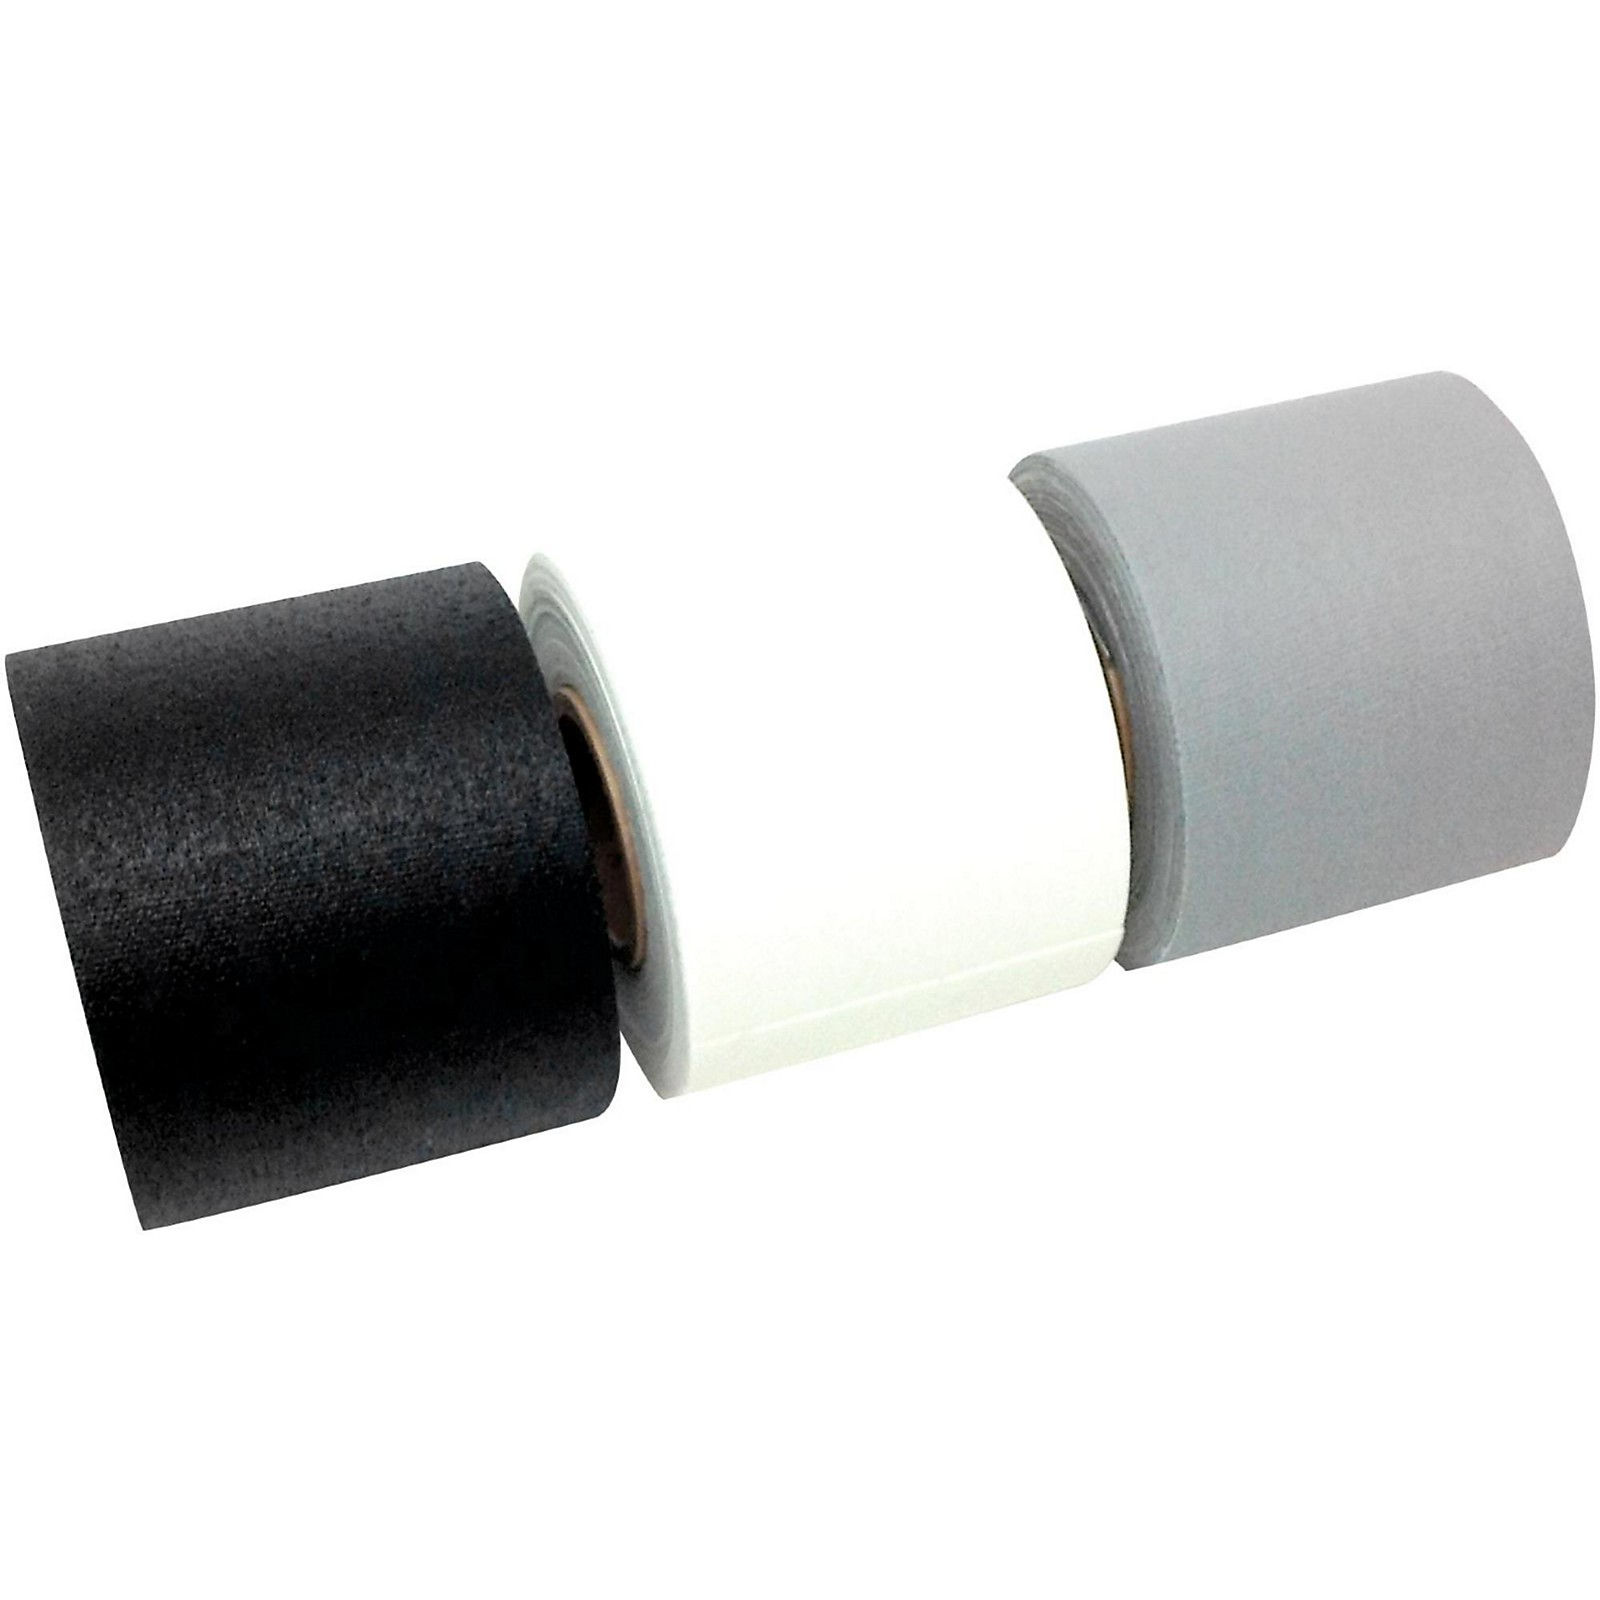 American Recorder Technologies Mini Roll Gaffers Tape 2 In x 8 Yards - Black, White, Gray